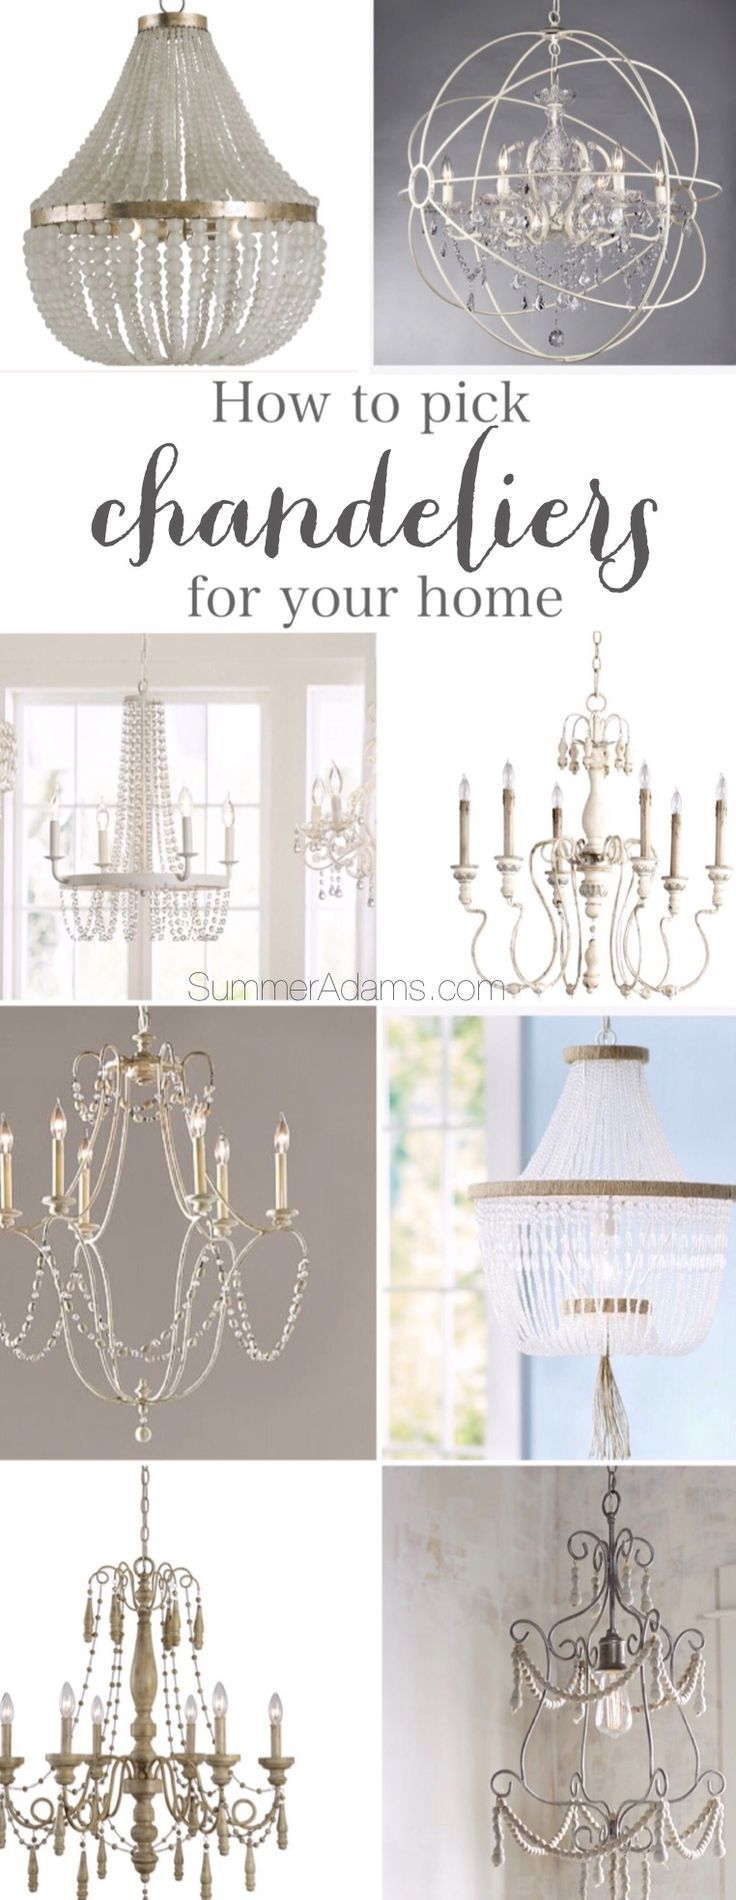 134 best Lighting images on Pinterest   Lighting ideas, Apron and ...